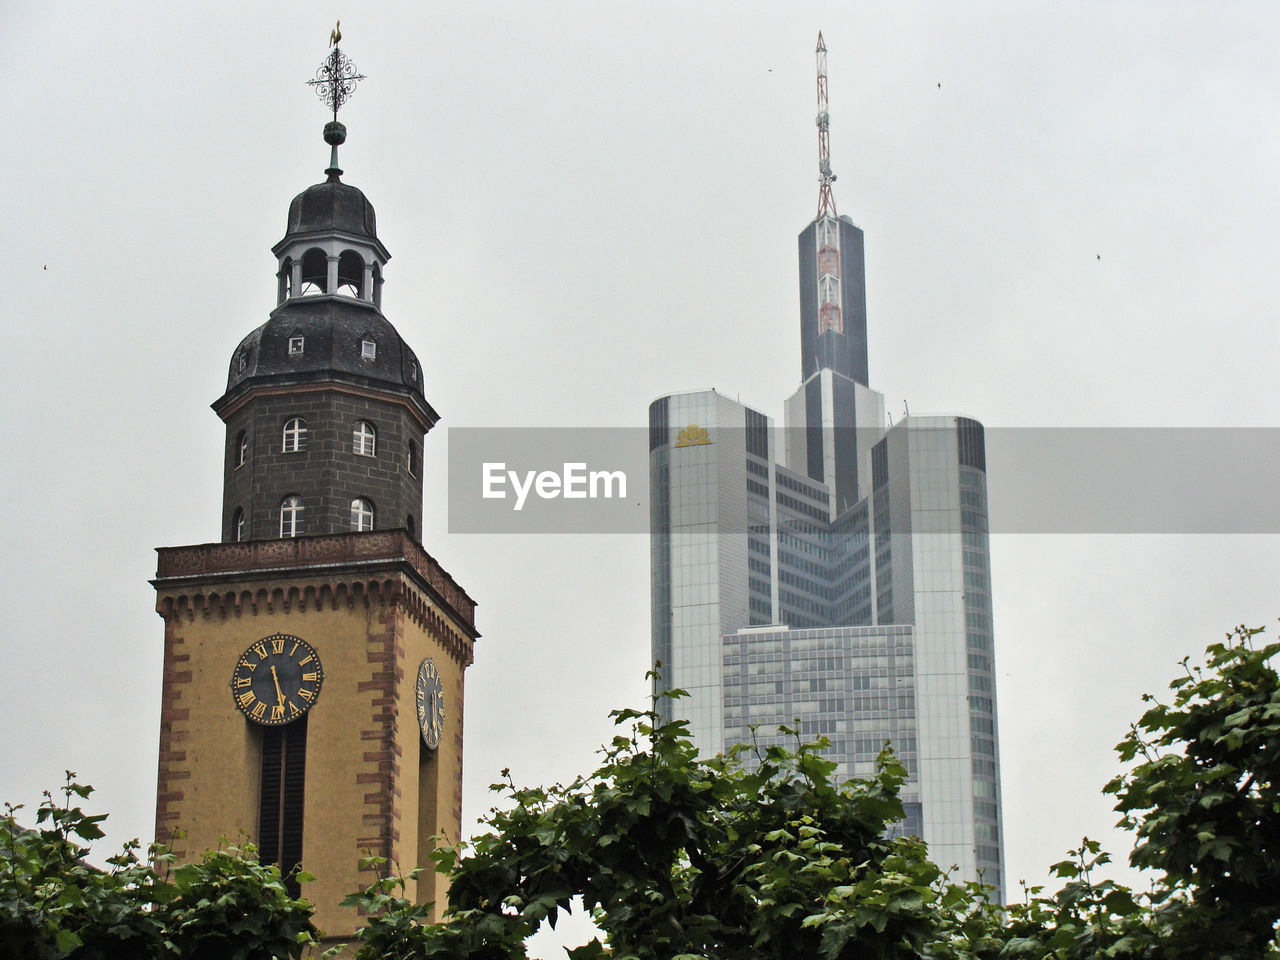 architecture, tower, building exterior, built structure, skyscraper, city, clock tower, tree, religion, sky, no people, clock, place of worship, outdoors, day, modern, bell tower, time